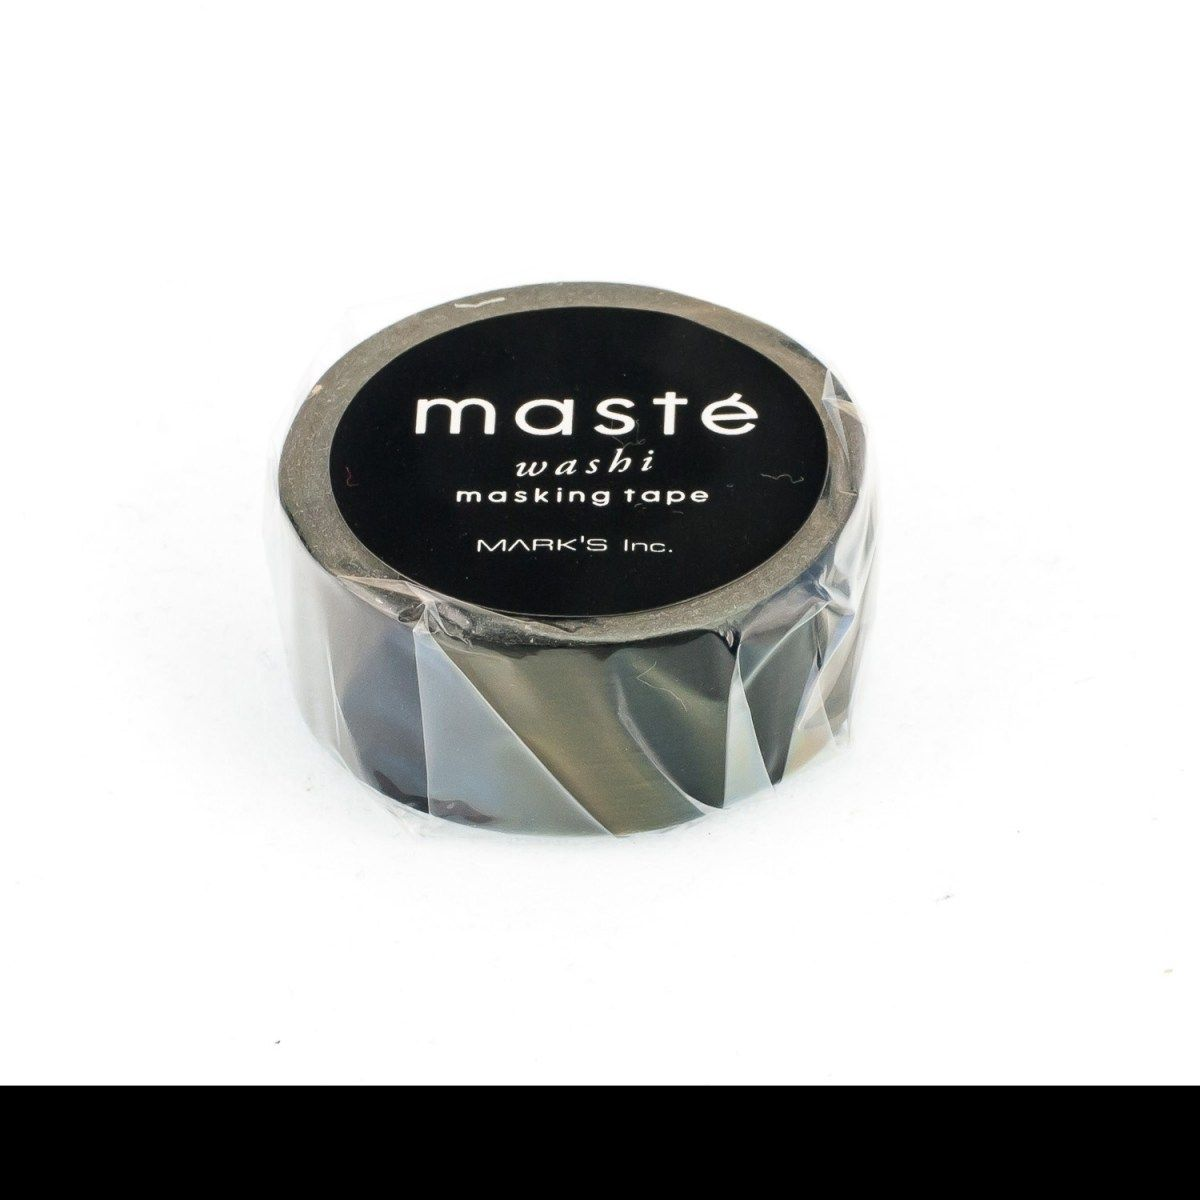 WASHI TAPE MASTÉ MATTE BLACK